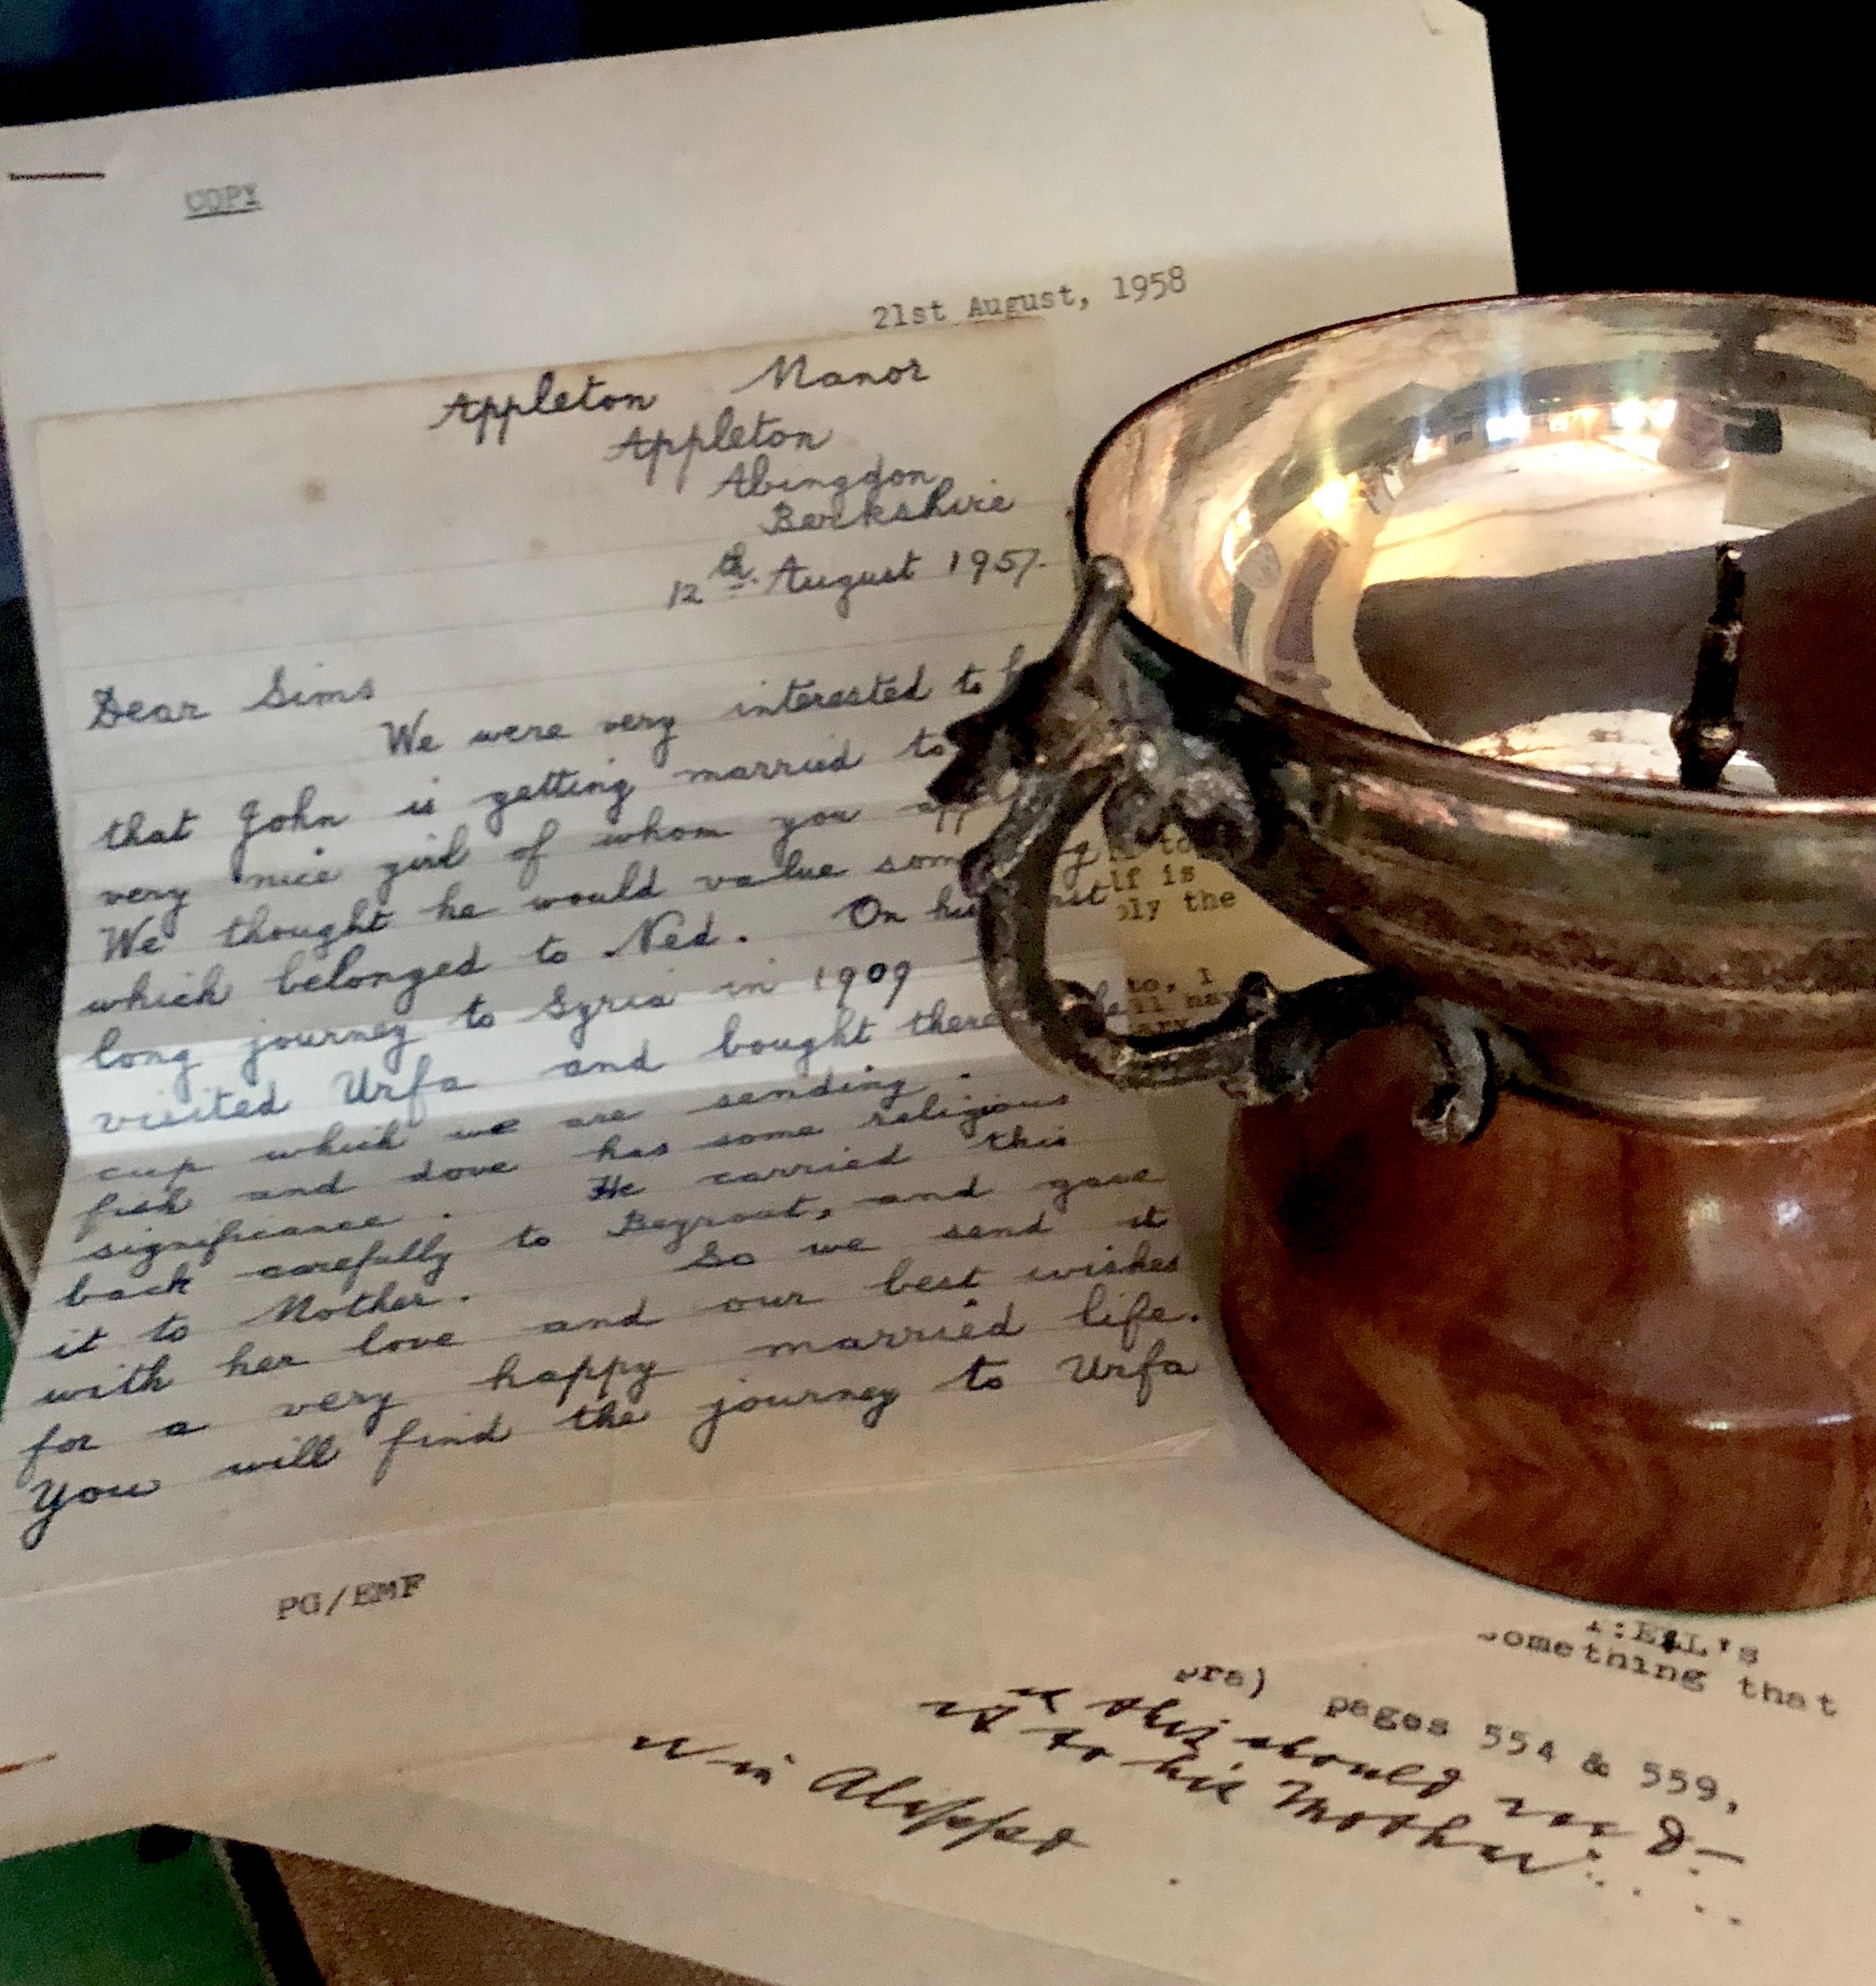 A unique collection of T.E. Lawrence family letters relating to Lawrence's first Syrian expedition, together with objects brought back to England from that 1909 trip, will be on display — along with many other items connected with Lawrence and his Middle Eastern travels.